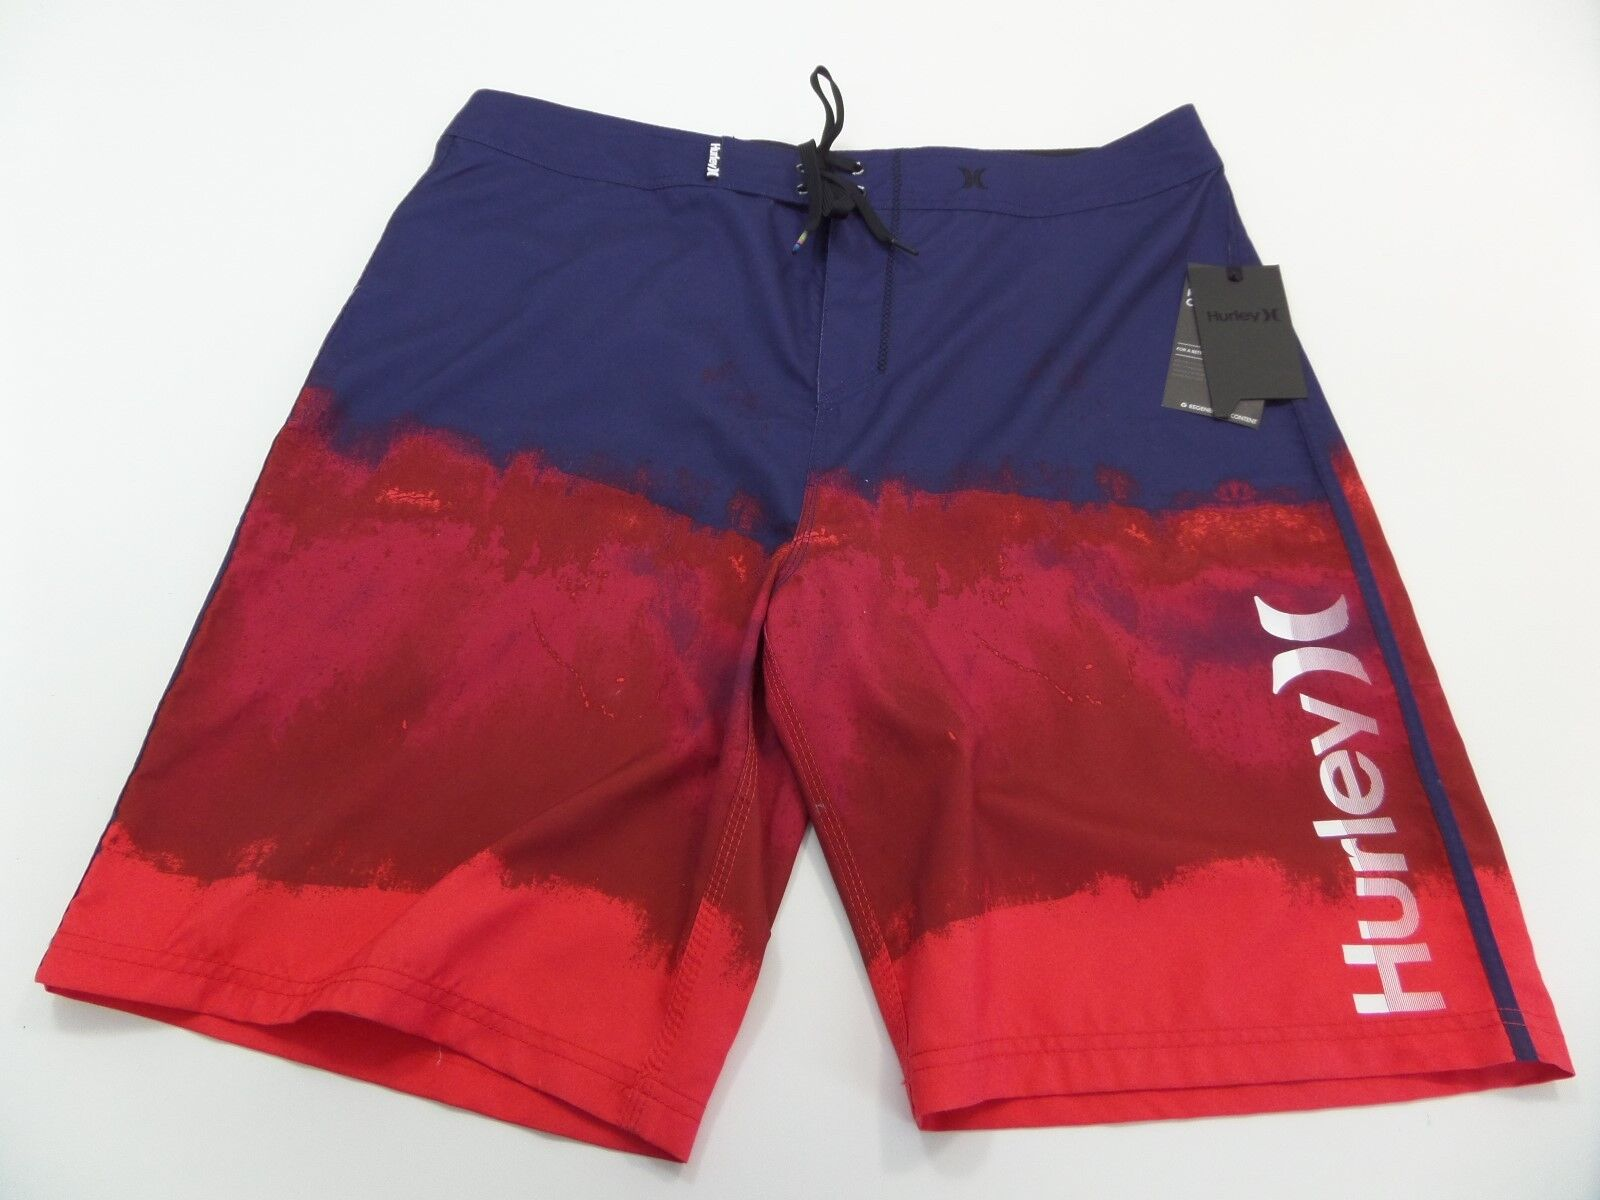 0b8e4461cae9a New Hurley Relief Board Shorts Mens 38 Tonal Size Ombre nbnkgz18064 ...